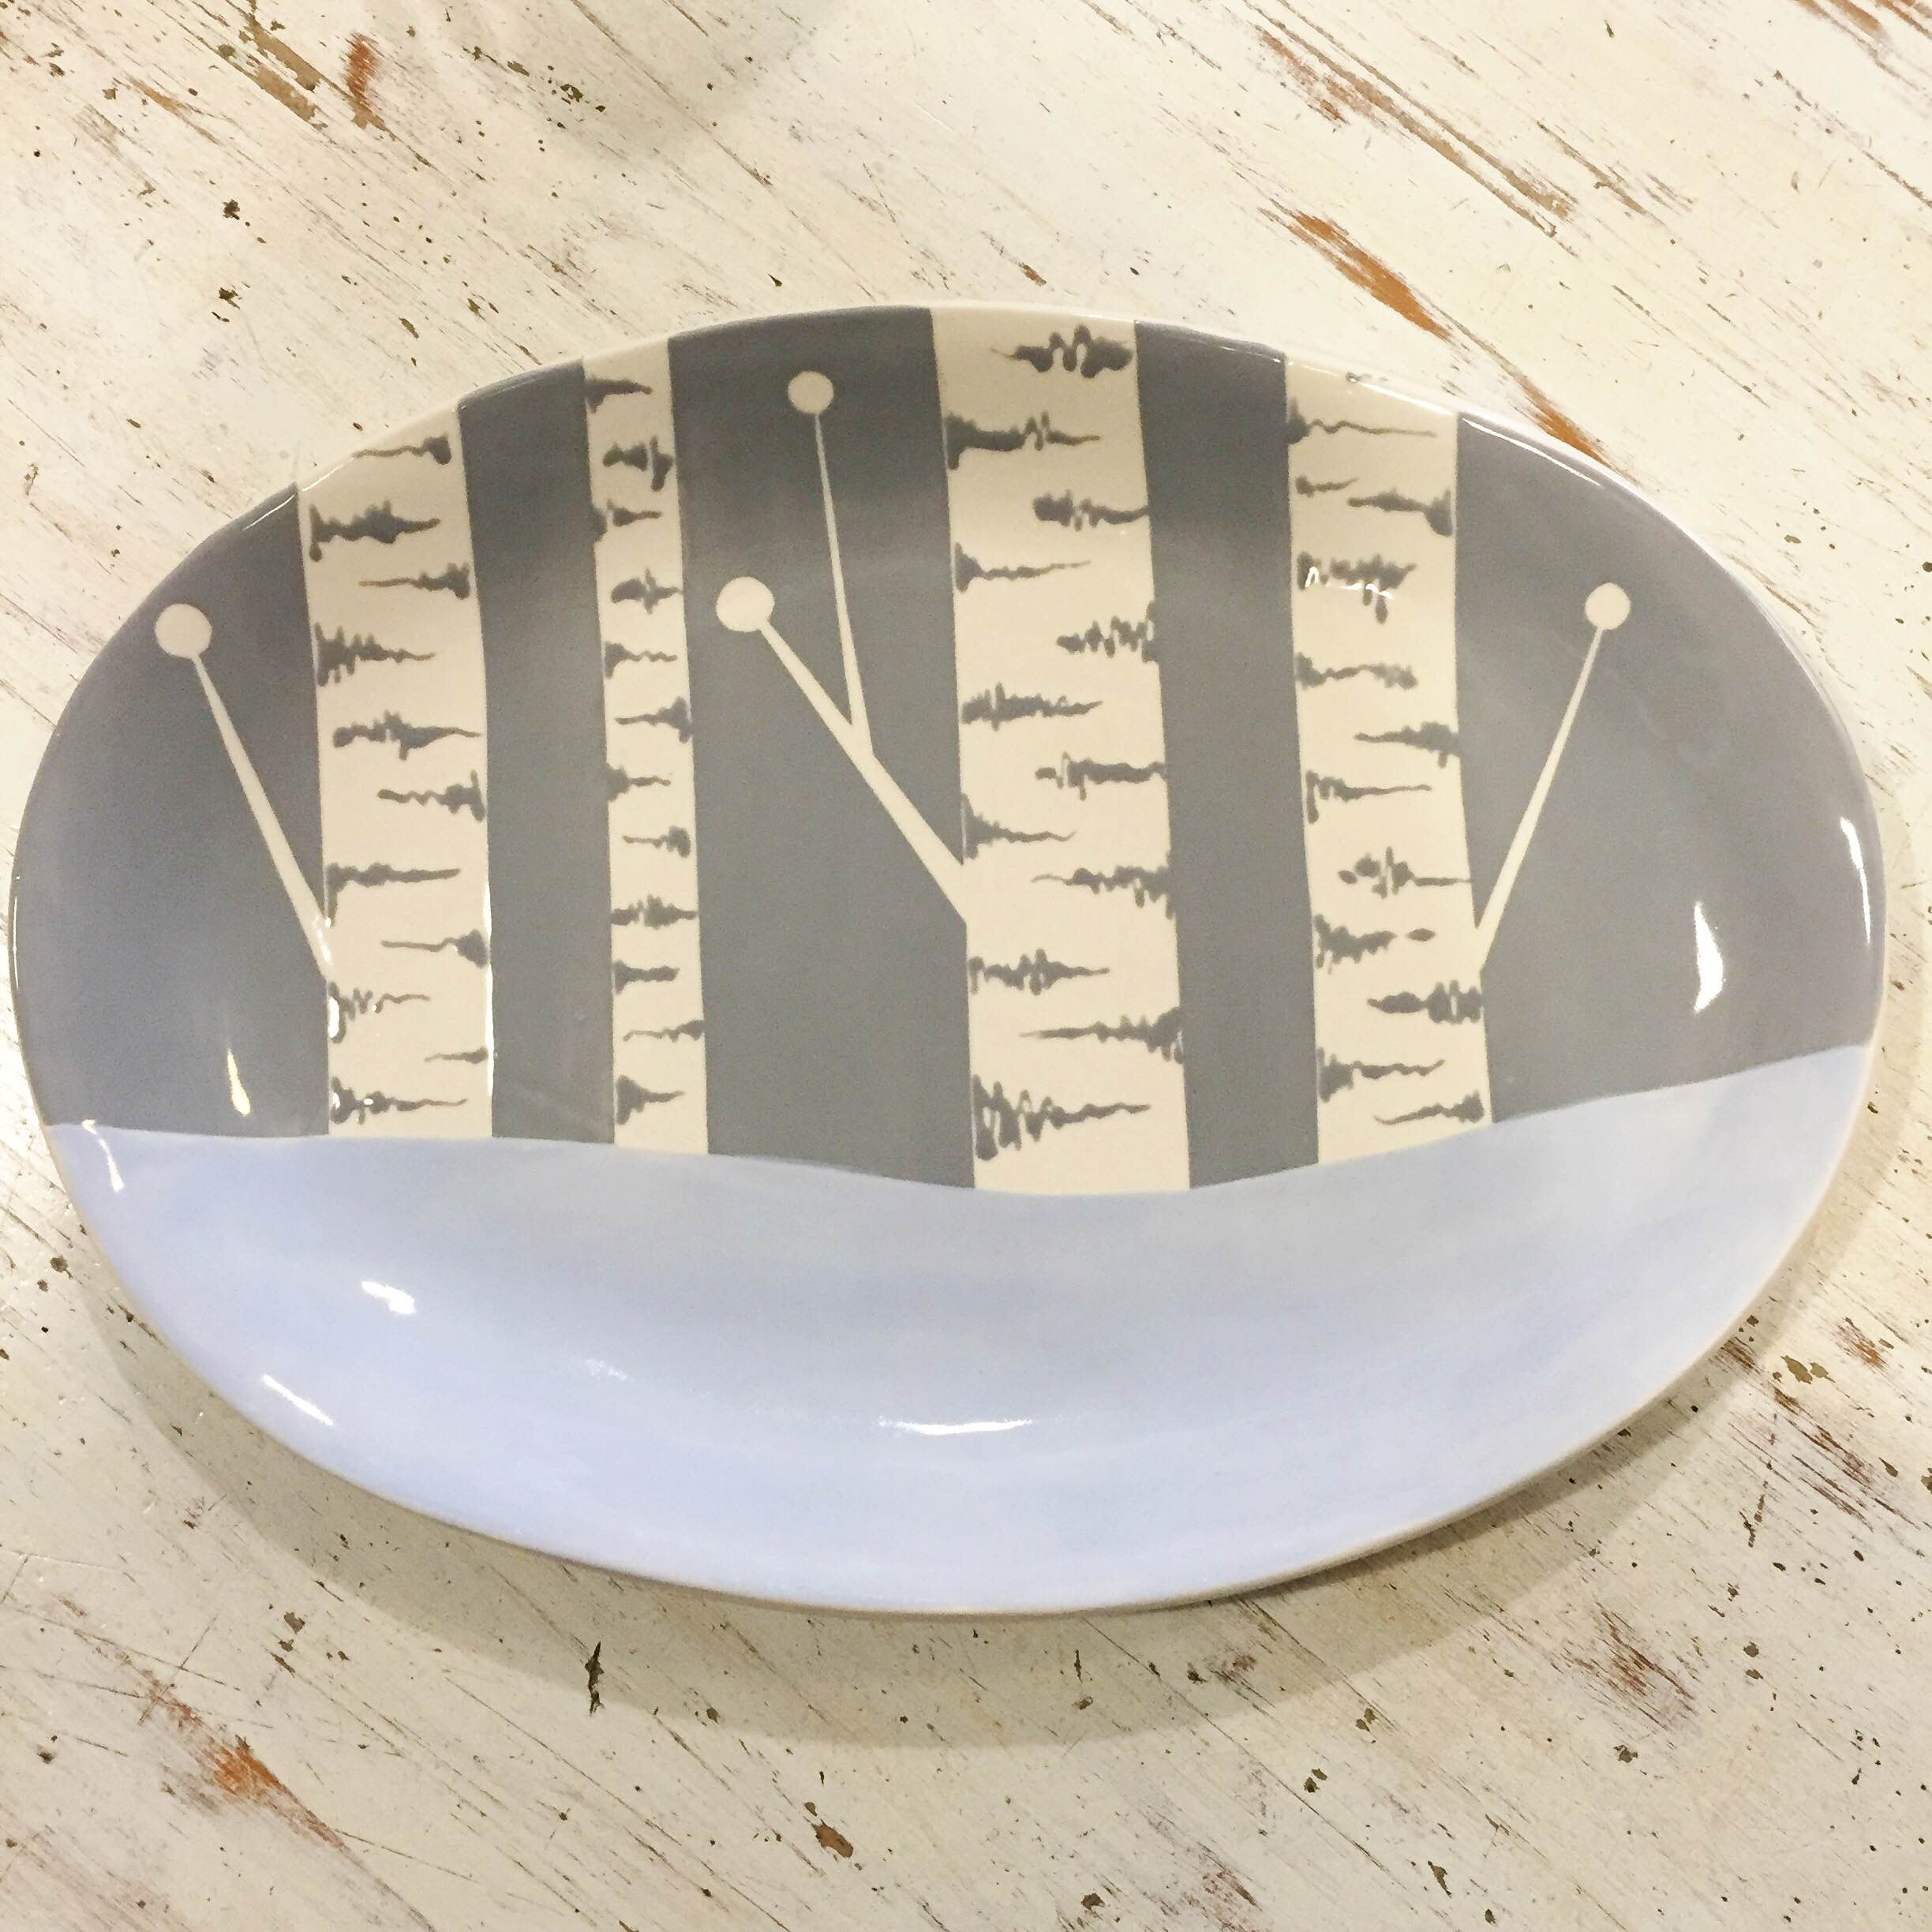 Learn how to paint this beautifully simple birch tree design on any plate you choose with one of our talented artists! Price depends on the size and style of your plate. You can also enjoy a coffee or glass of wine while you paint! Call us to reserve your spot today!